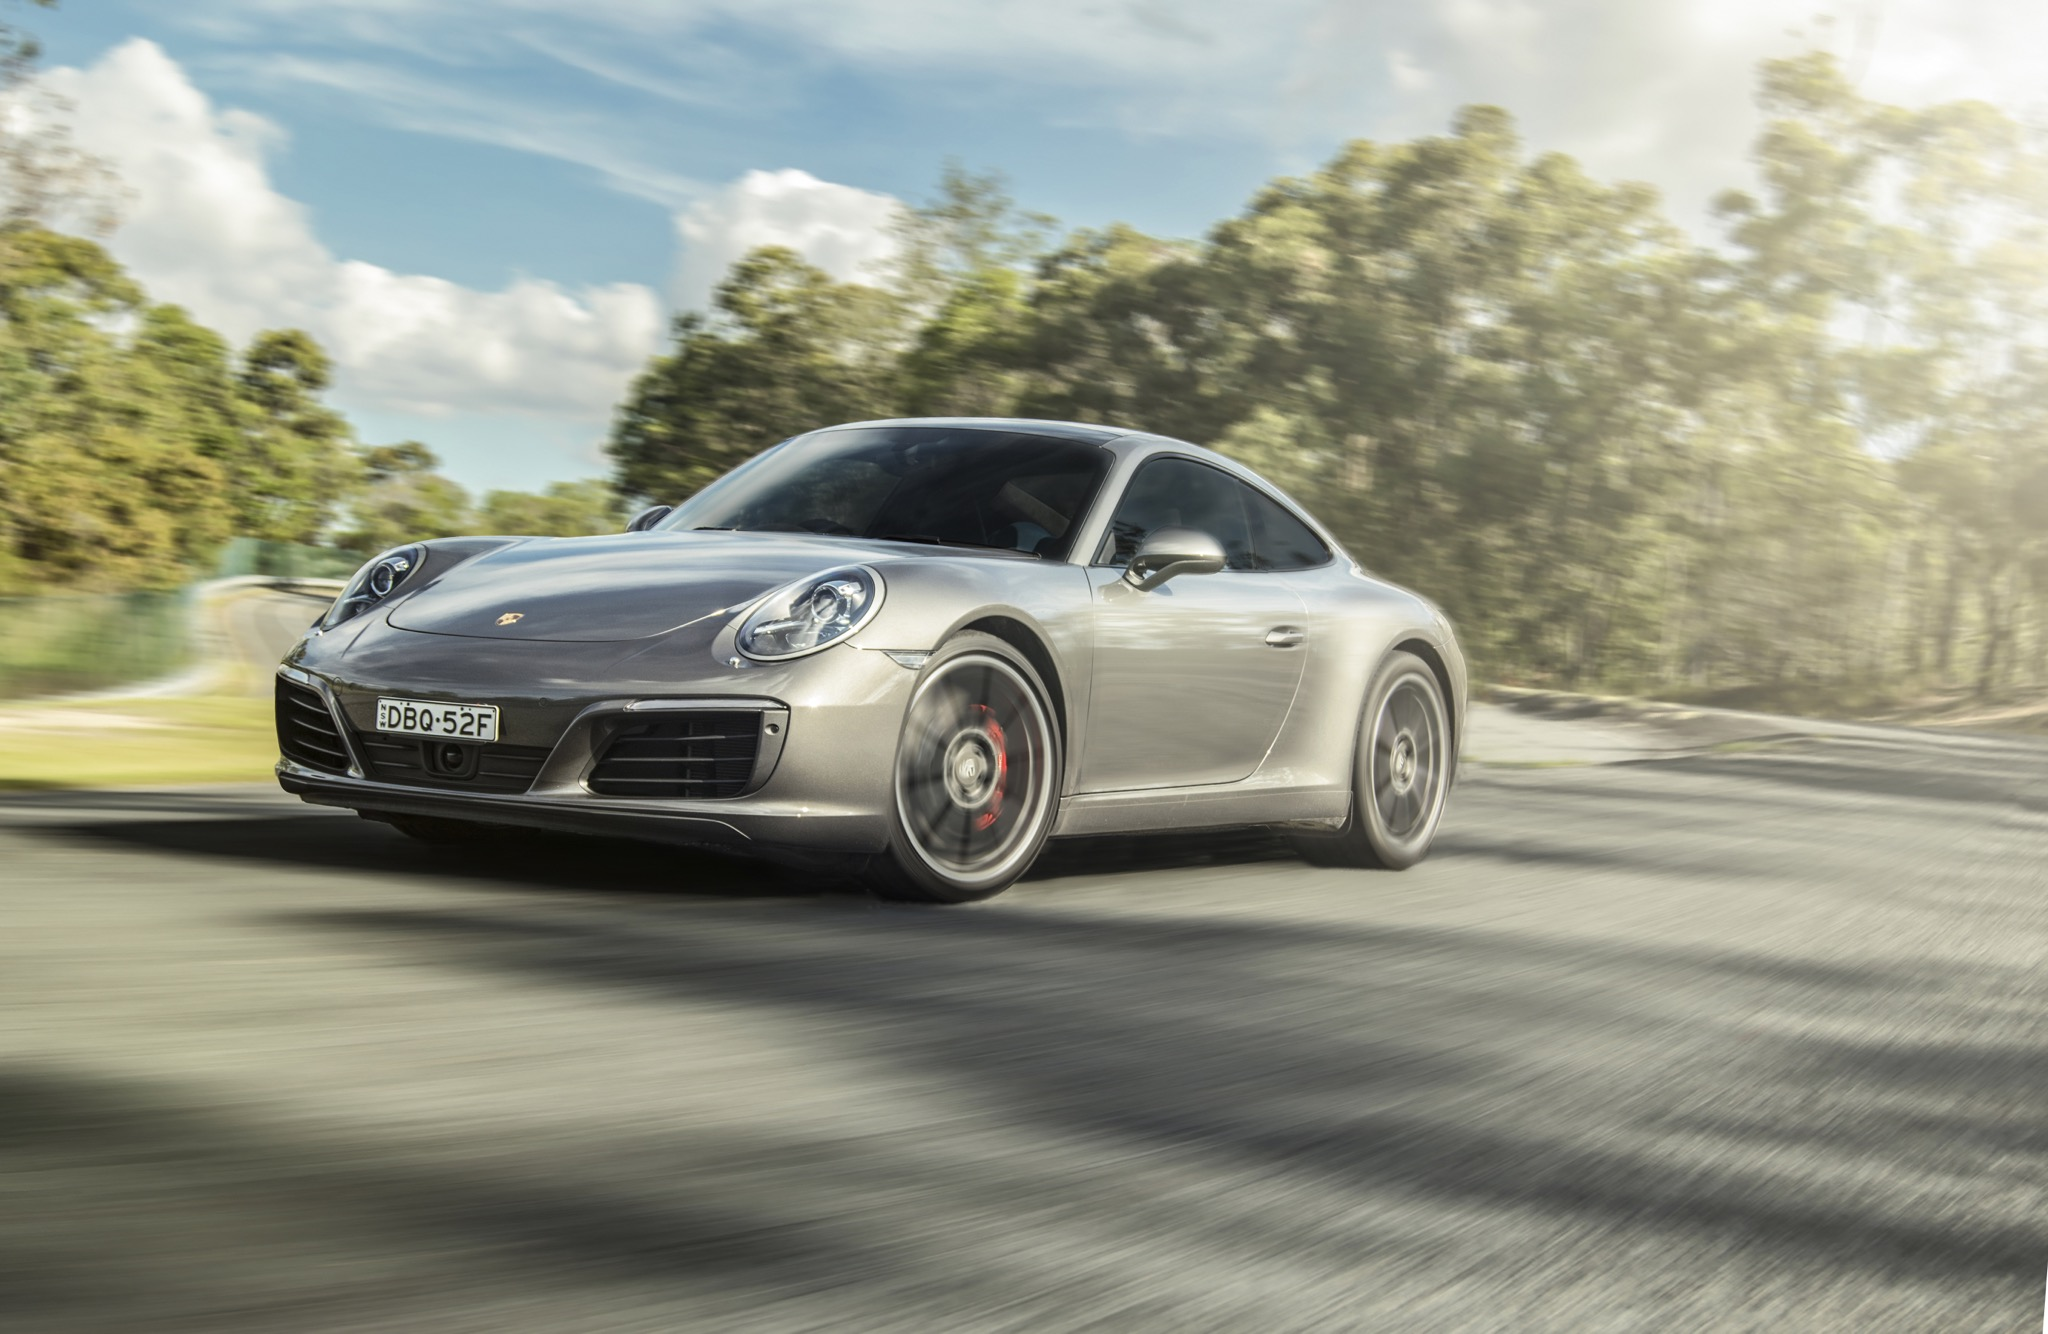 Porsche 911 Carrera S photo 165553